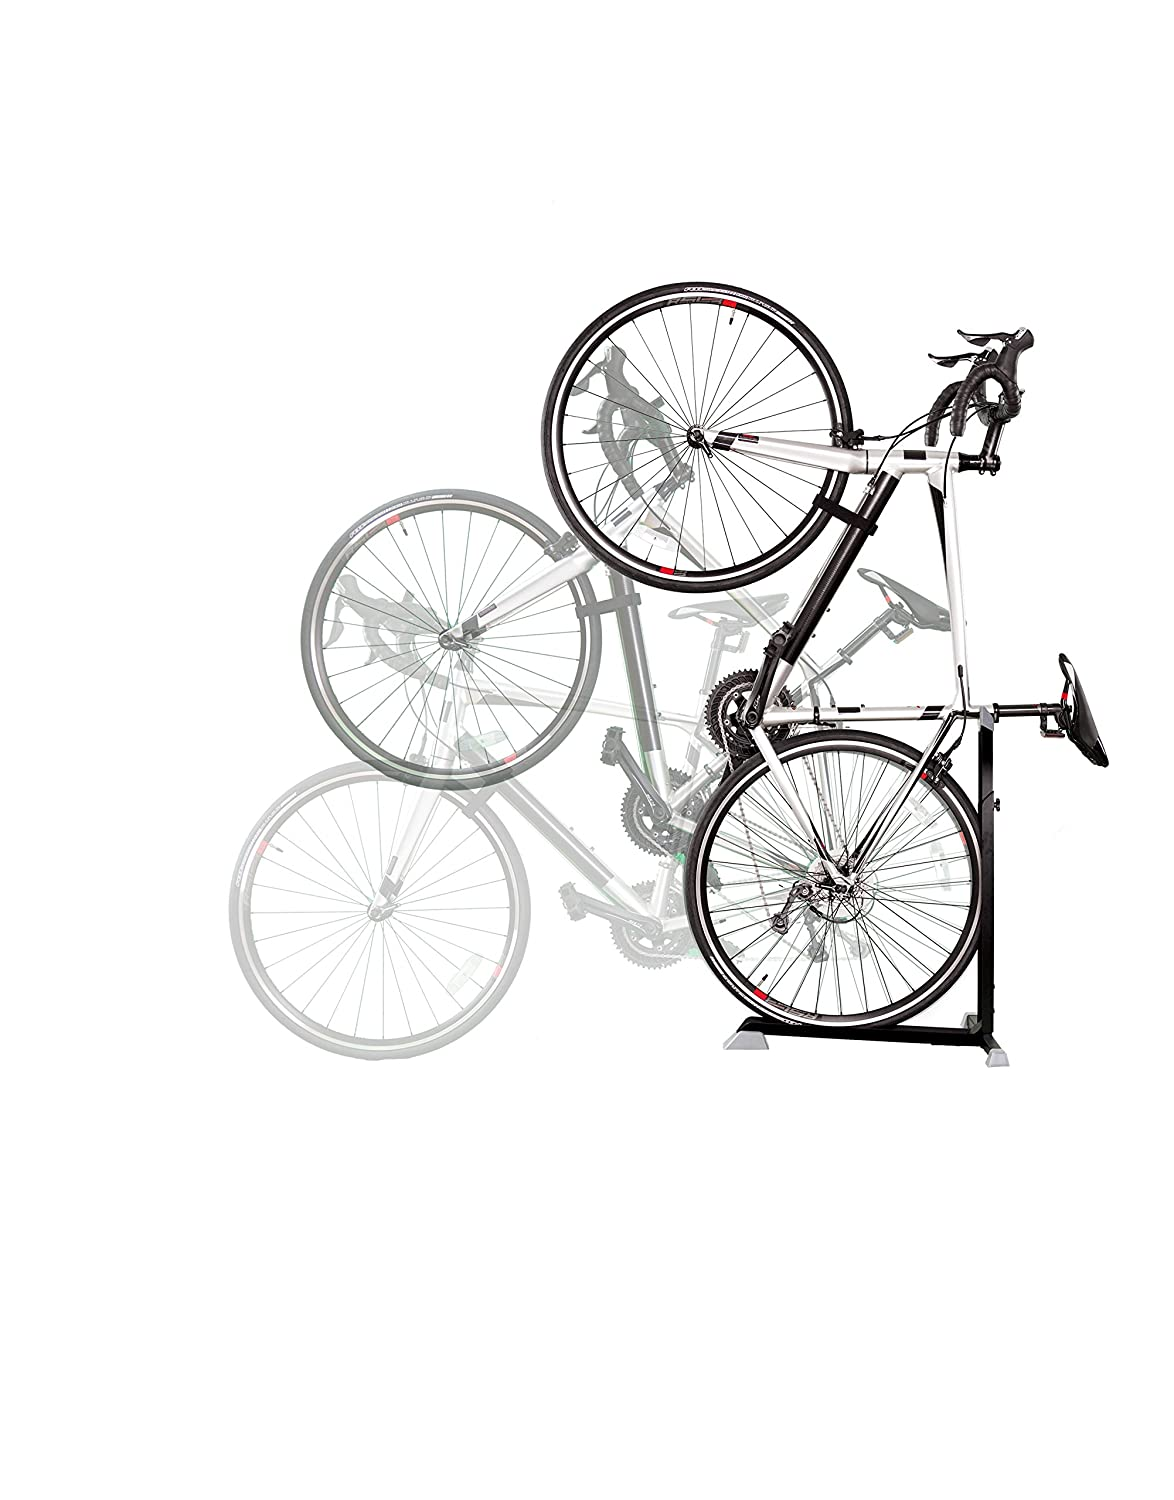 Bike Nook Bicycle Stand The Easy-to-Use Upright Design Lets You Store Your Bike Instantly in A Space-Saving Handstand Position, Freeing Floor Space in Your Living Room, Bedroom or Garage! Thane USA Inc 203-3337201